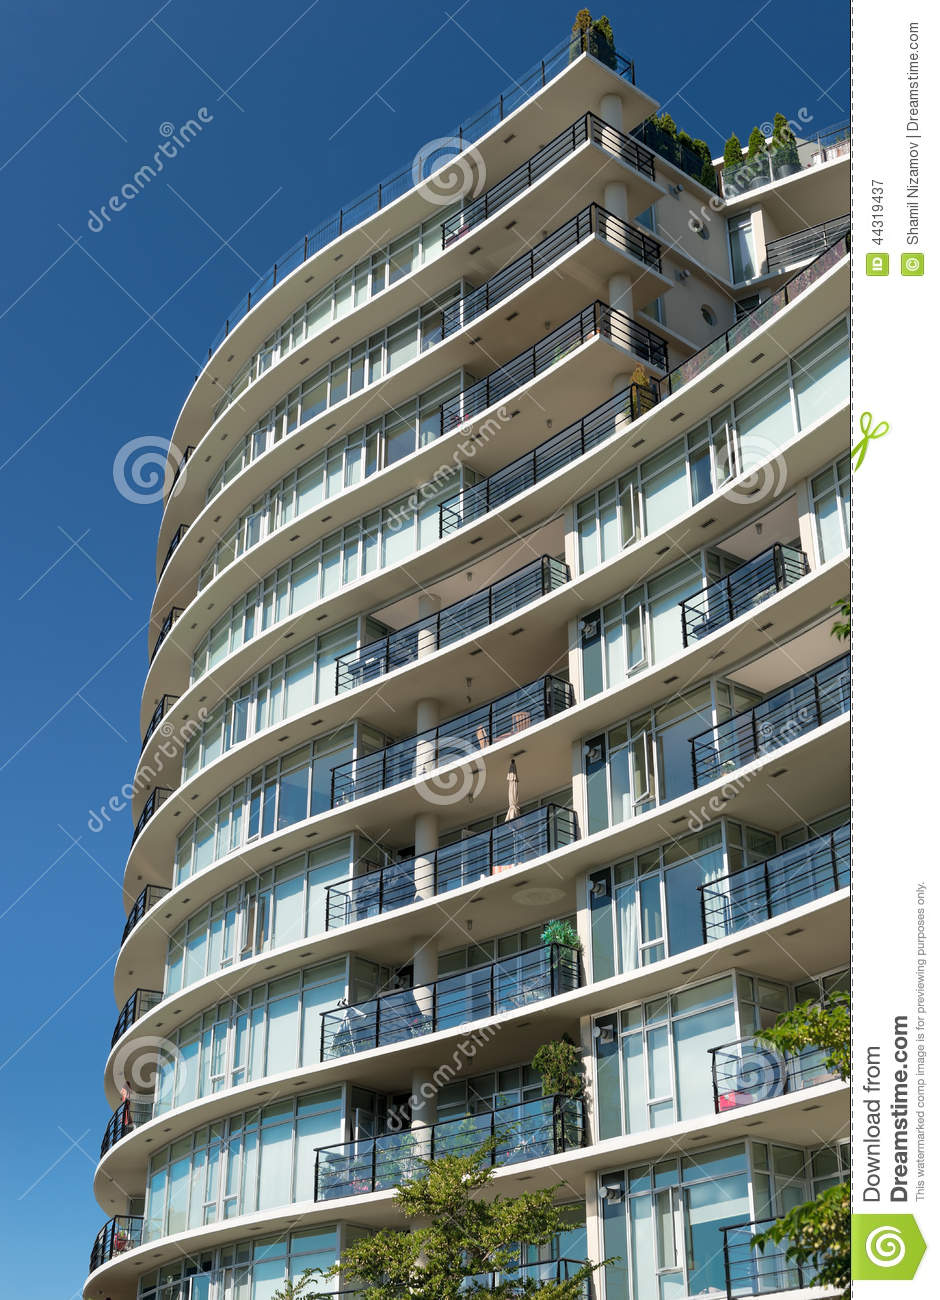 Condominium Or Apartment Building Stock Image  Image